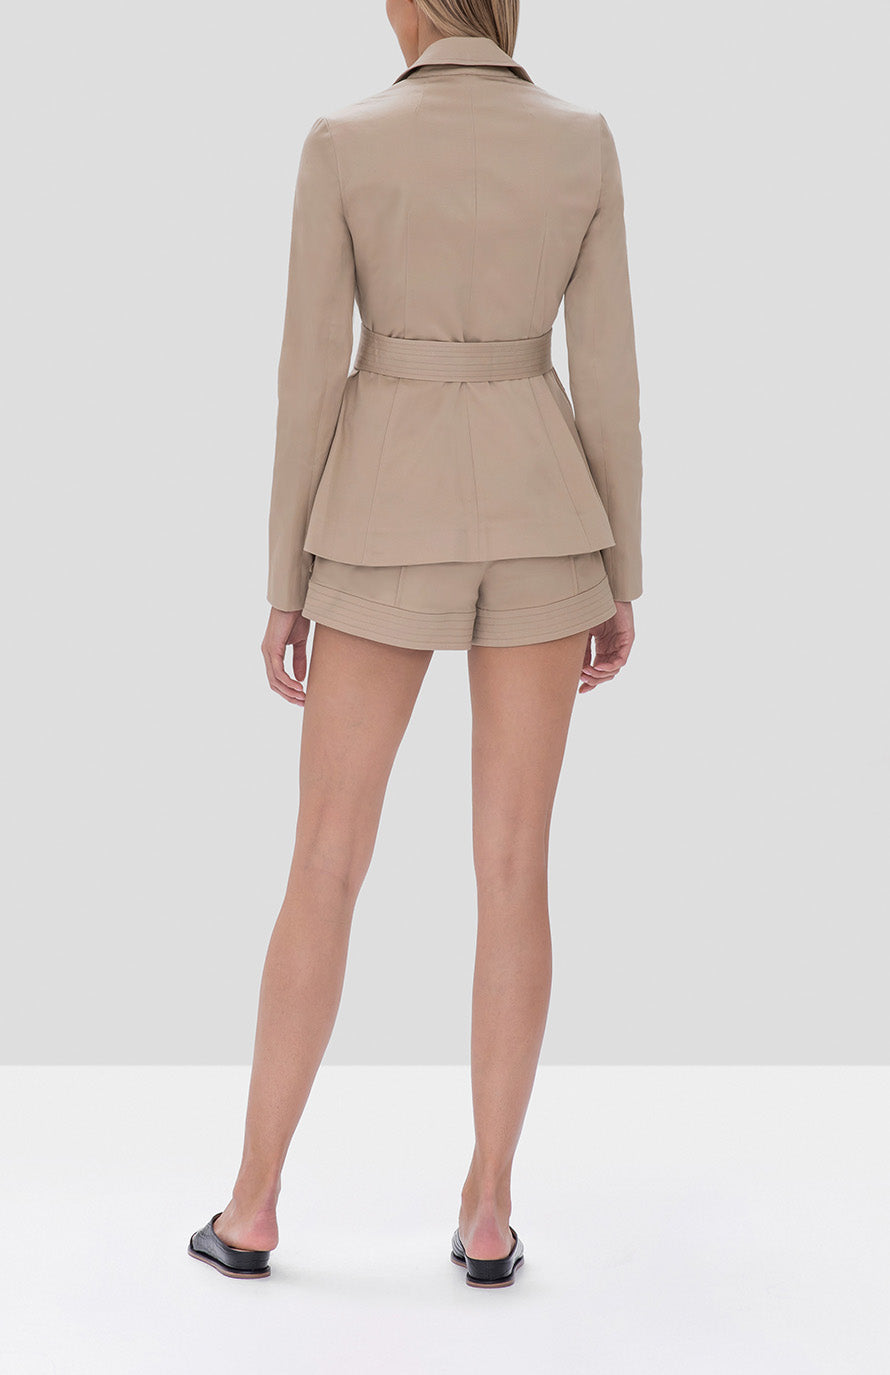 Alexis Elka Jacket and Winnick Shorts in Tan from the Fall Winter 2019 Ready To Wear Collection - Rear View